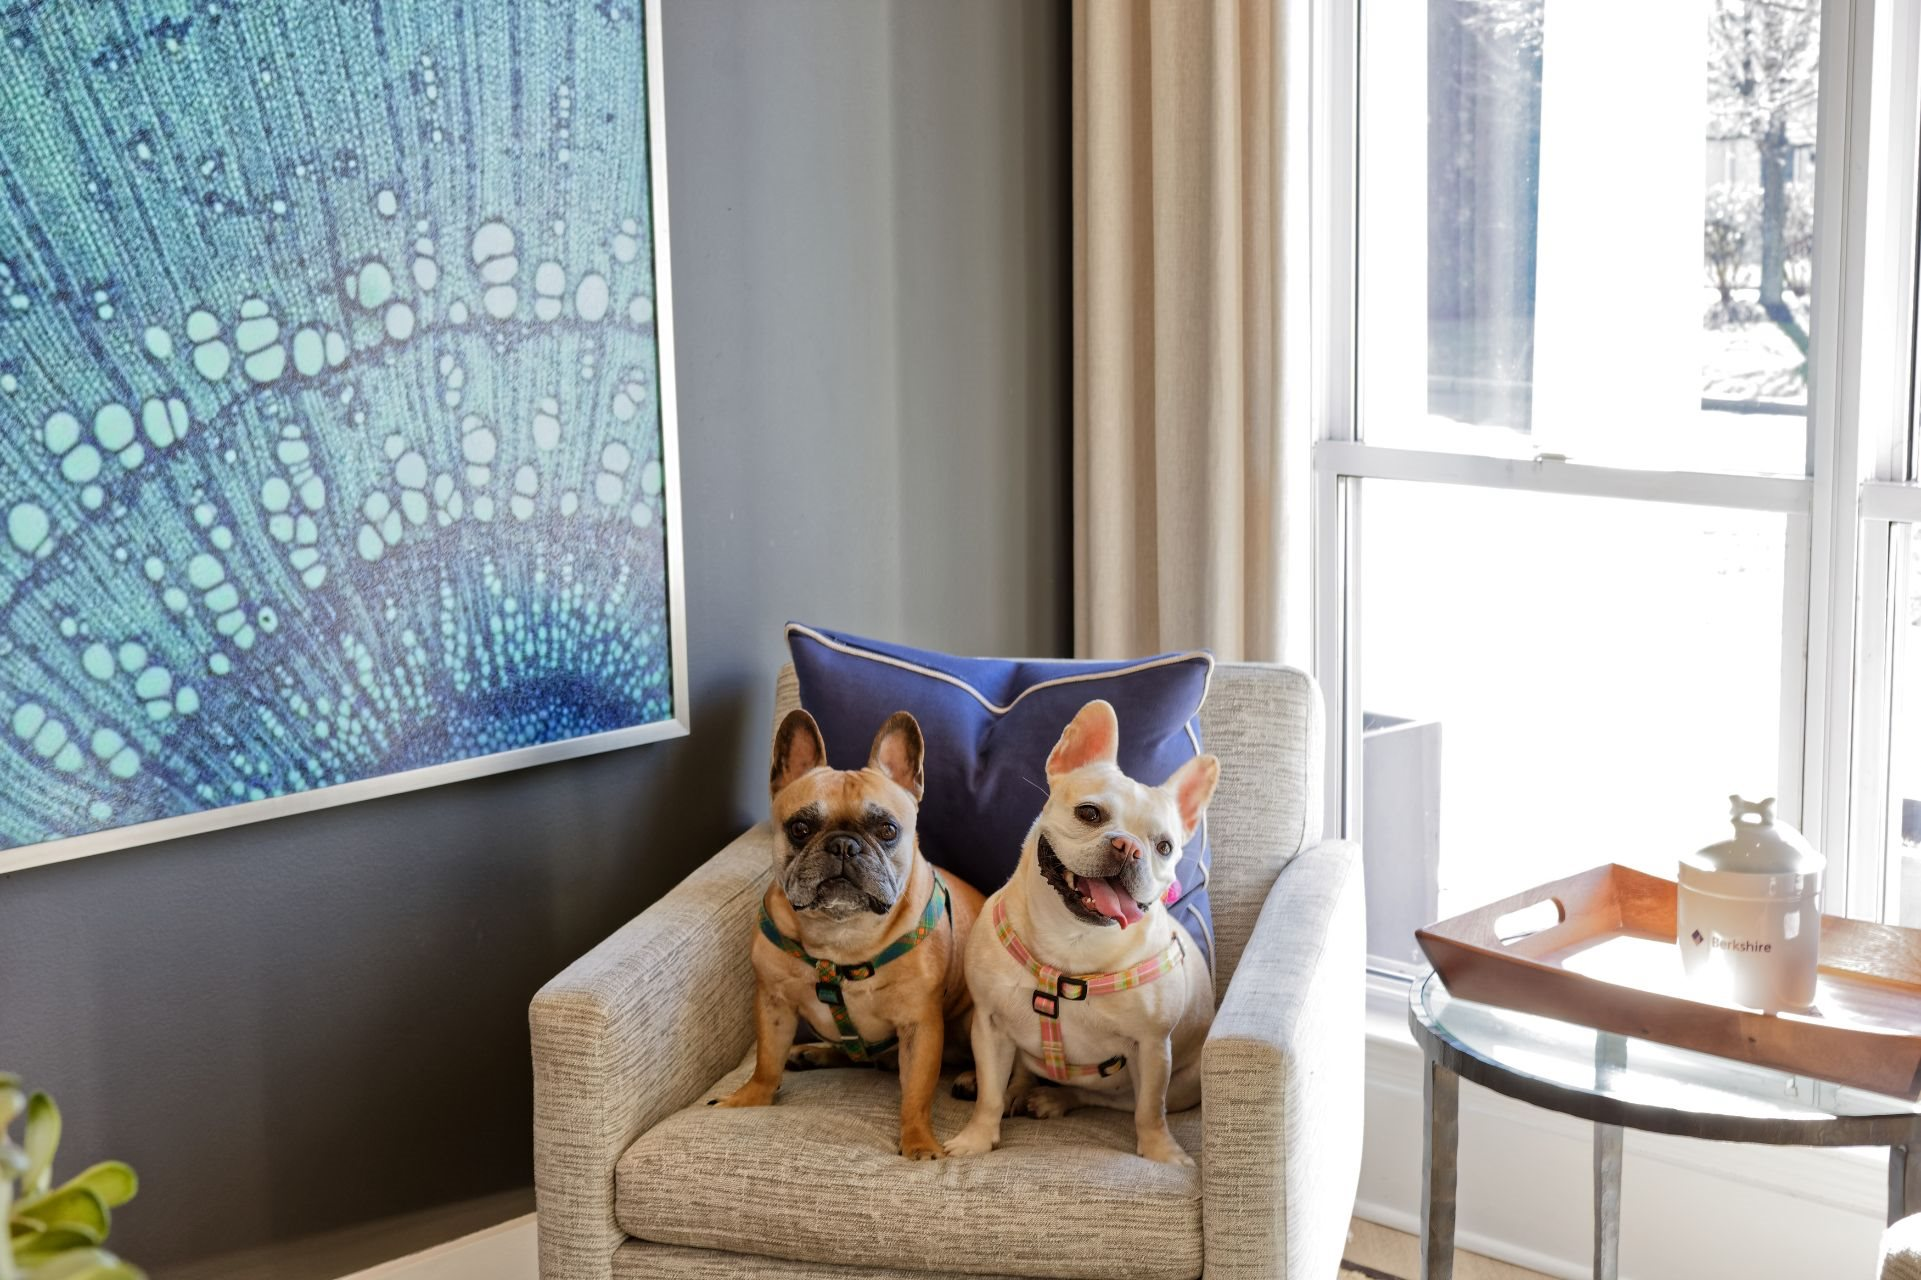 Pet Friendly, Newly Renovated 1, 2 and 3 Bedroom Apartments in Lawrenceville NJ-1000 Steward Crossing Way Lawrenceville NJ 08646-Dog Park, Large Pets Welcome,  No Weight Limit